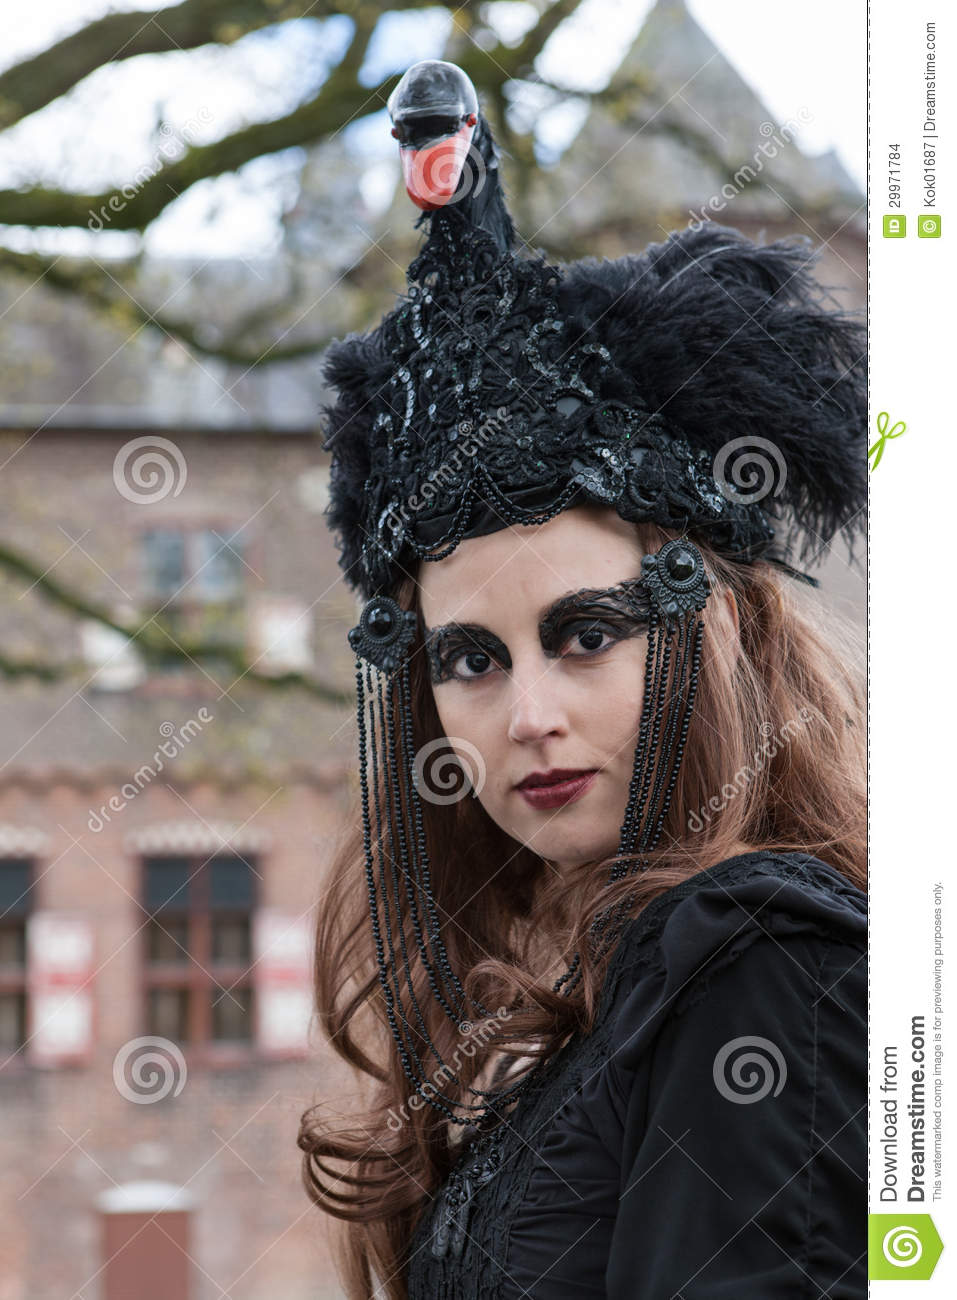 utrecht black single women Journalist santje kramer asked 24 foreigners who live in the netherlands for their views on dutch women and collected her  dutch women are unfriendly and .